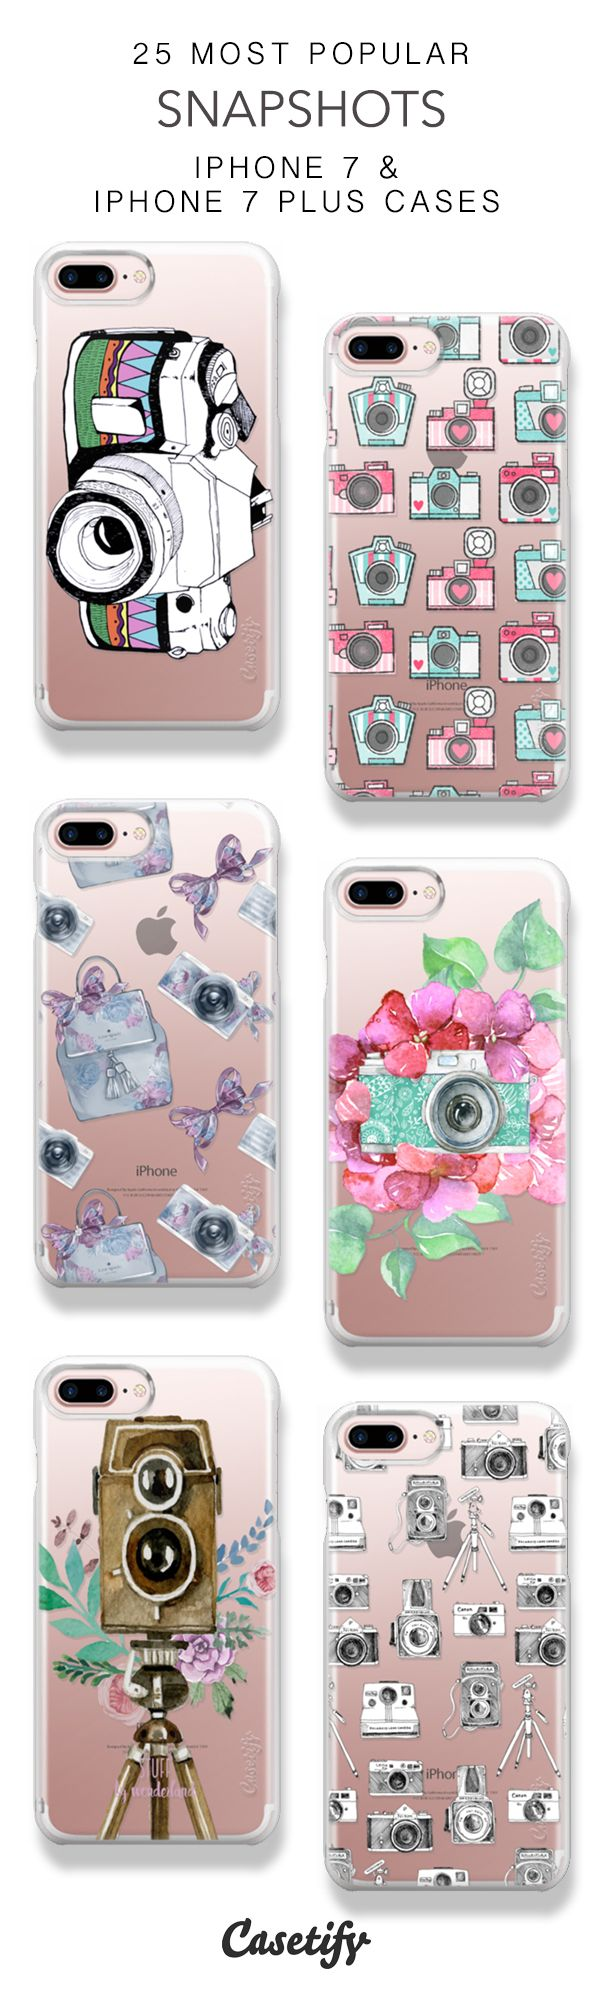 25 Most Popular Snapshots Protective iPhone 7 Cases and iPhone 7 Plus Cases. More Camera iPhone case here > https://www.casetify.com/collections/top_100_designs#/?vc=zMTs5lenP9